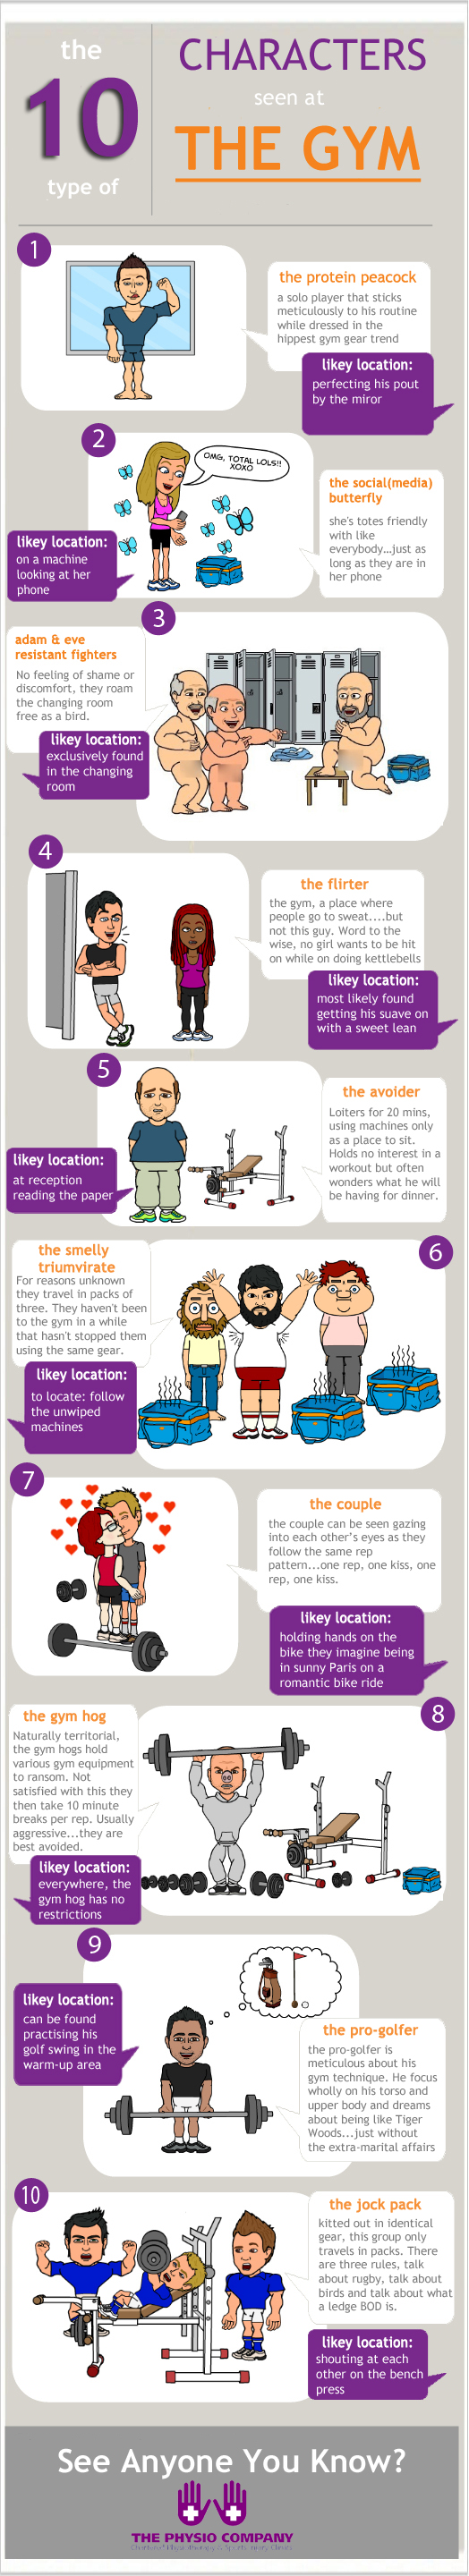 10 People You See At The Gym